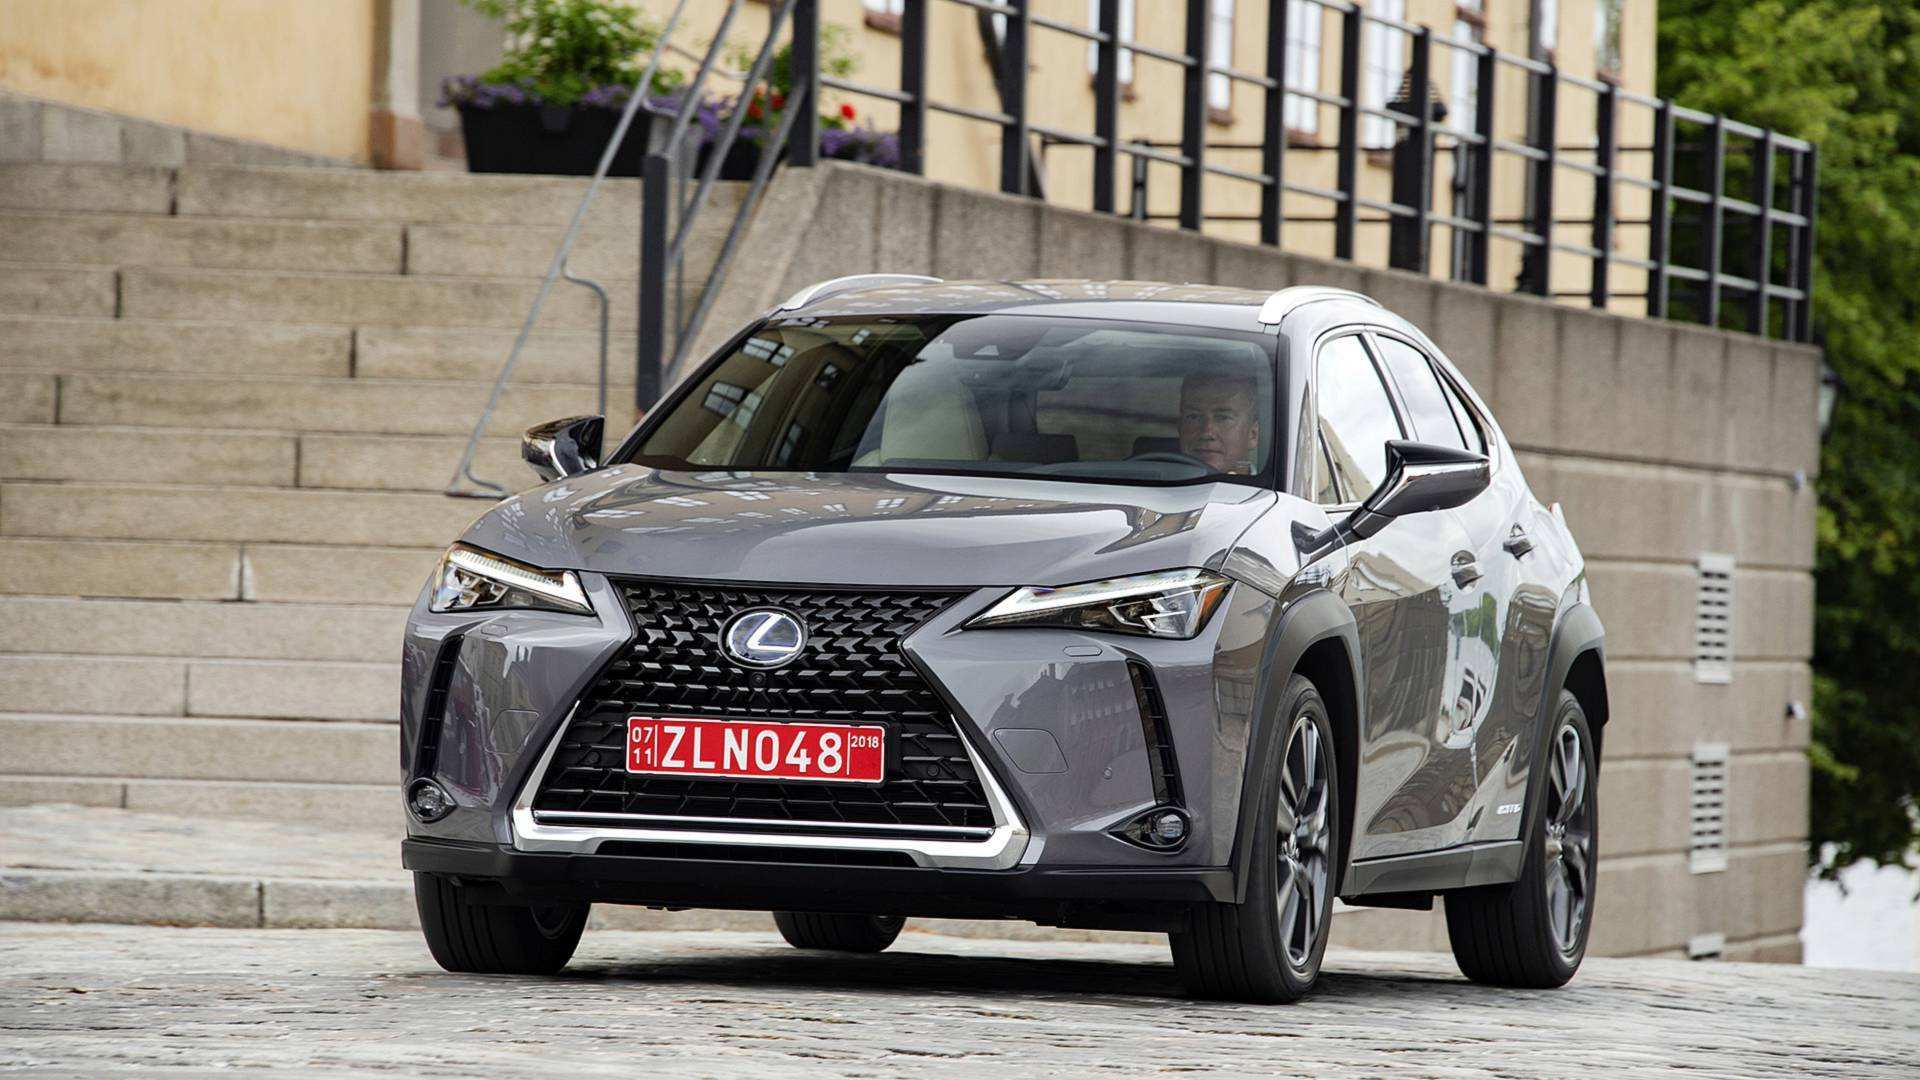 89 The Best 2019 Lexus Ux Hybrid Redesign And Concept